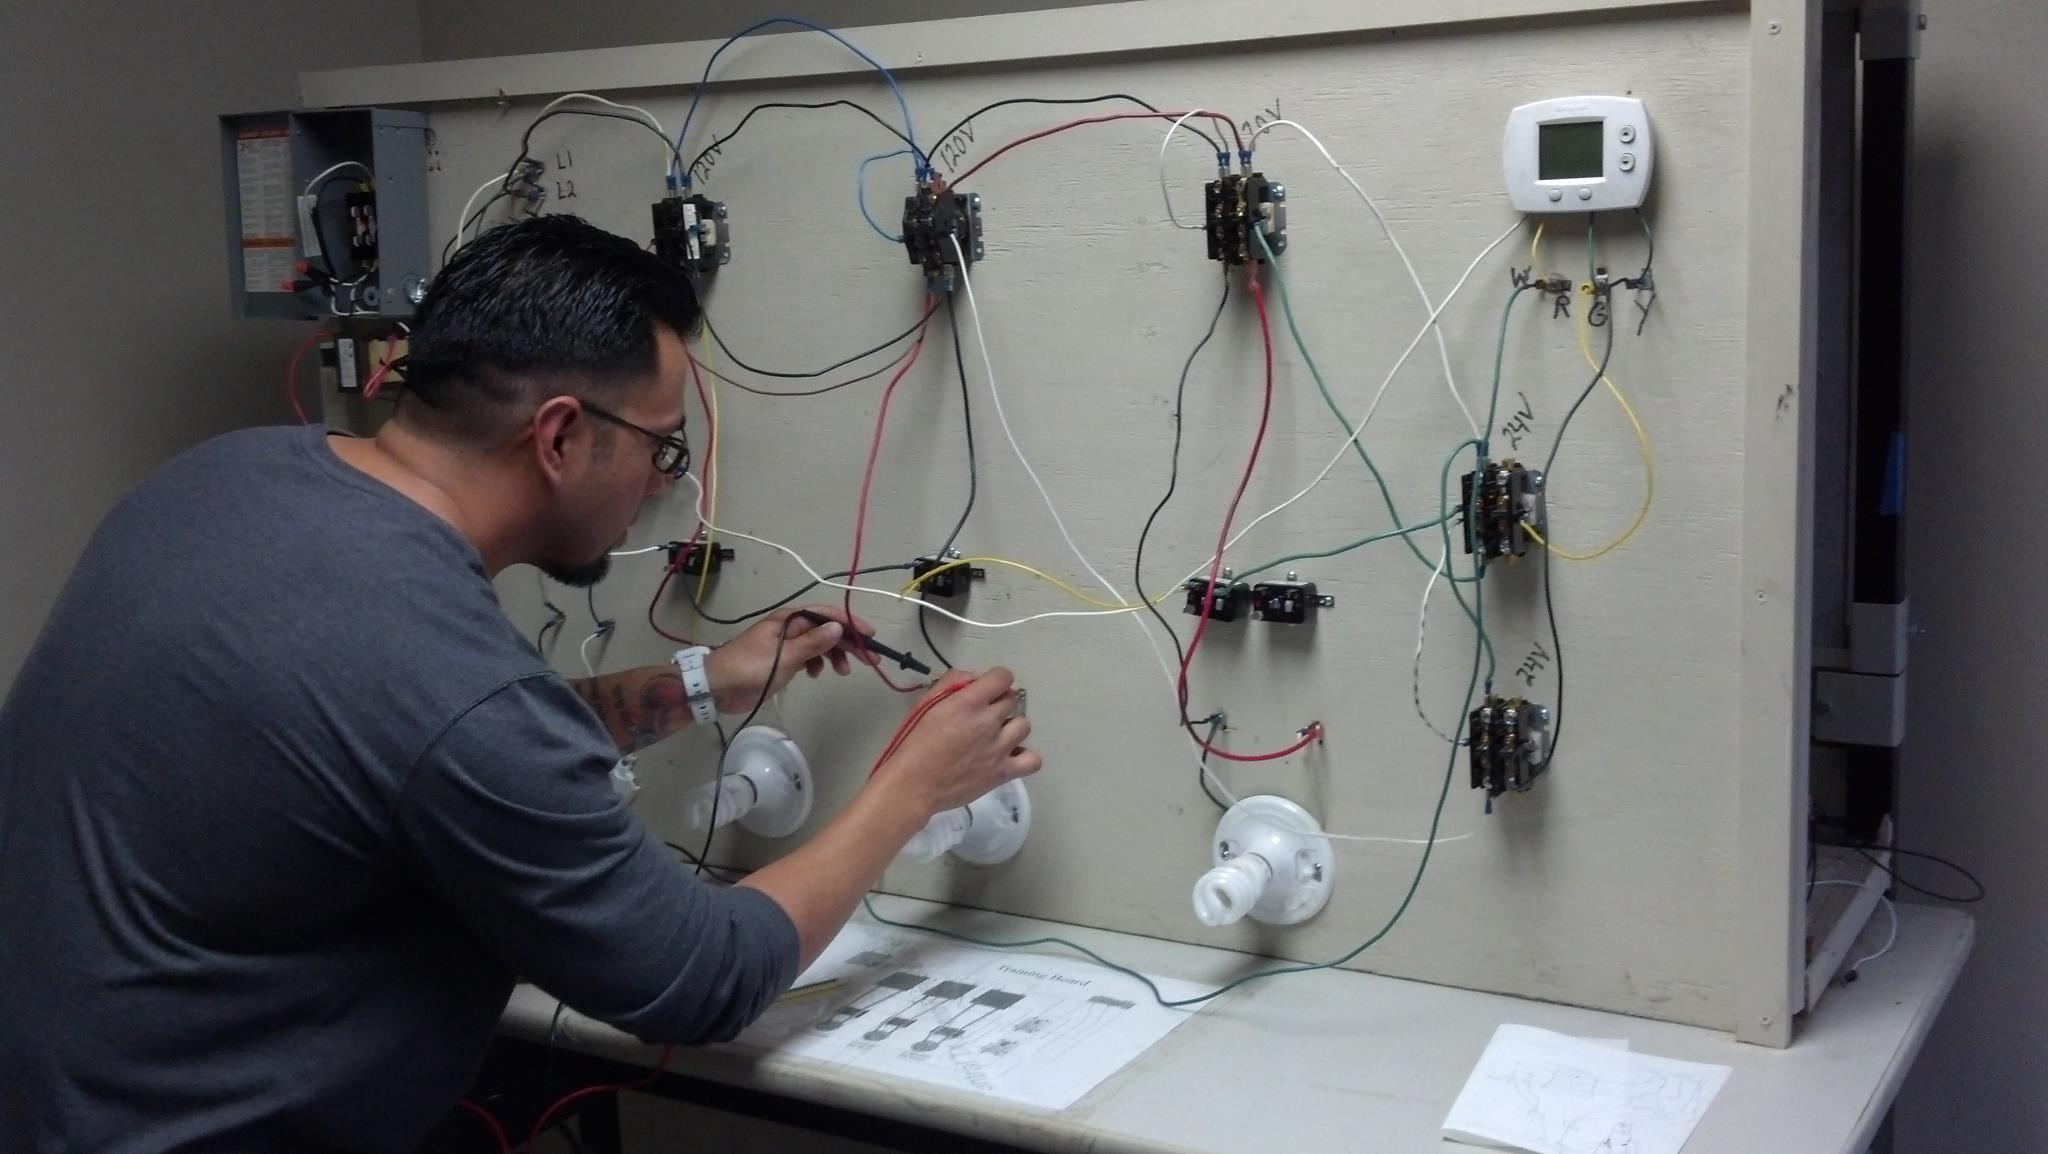 Media Central Texas Ac And Refrigeration School Electrical Circuit Training Board Graduation Gallery